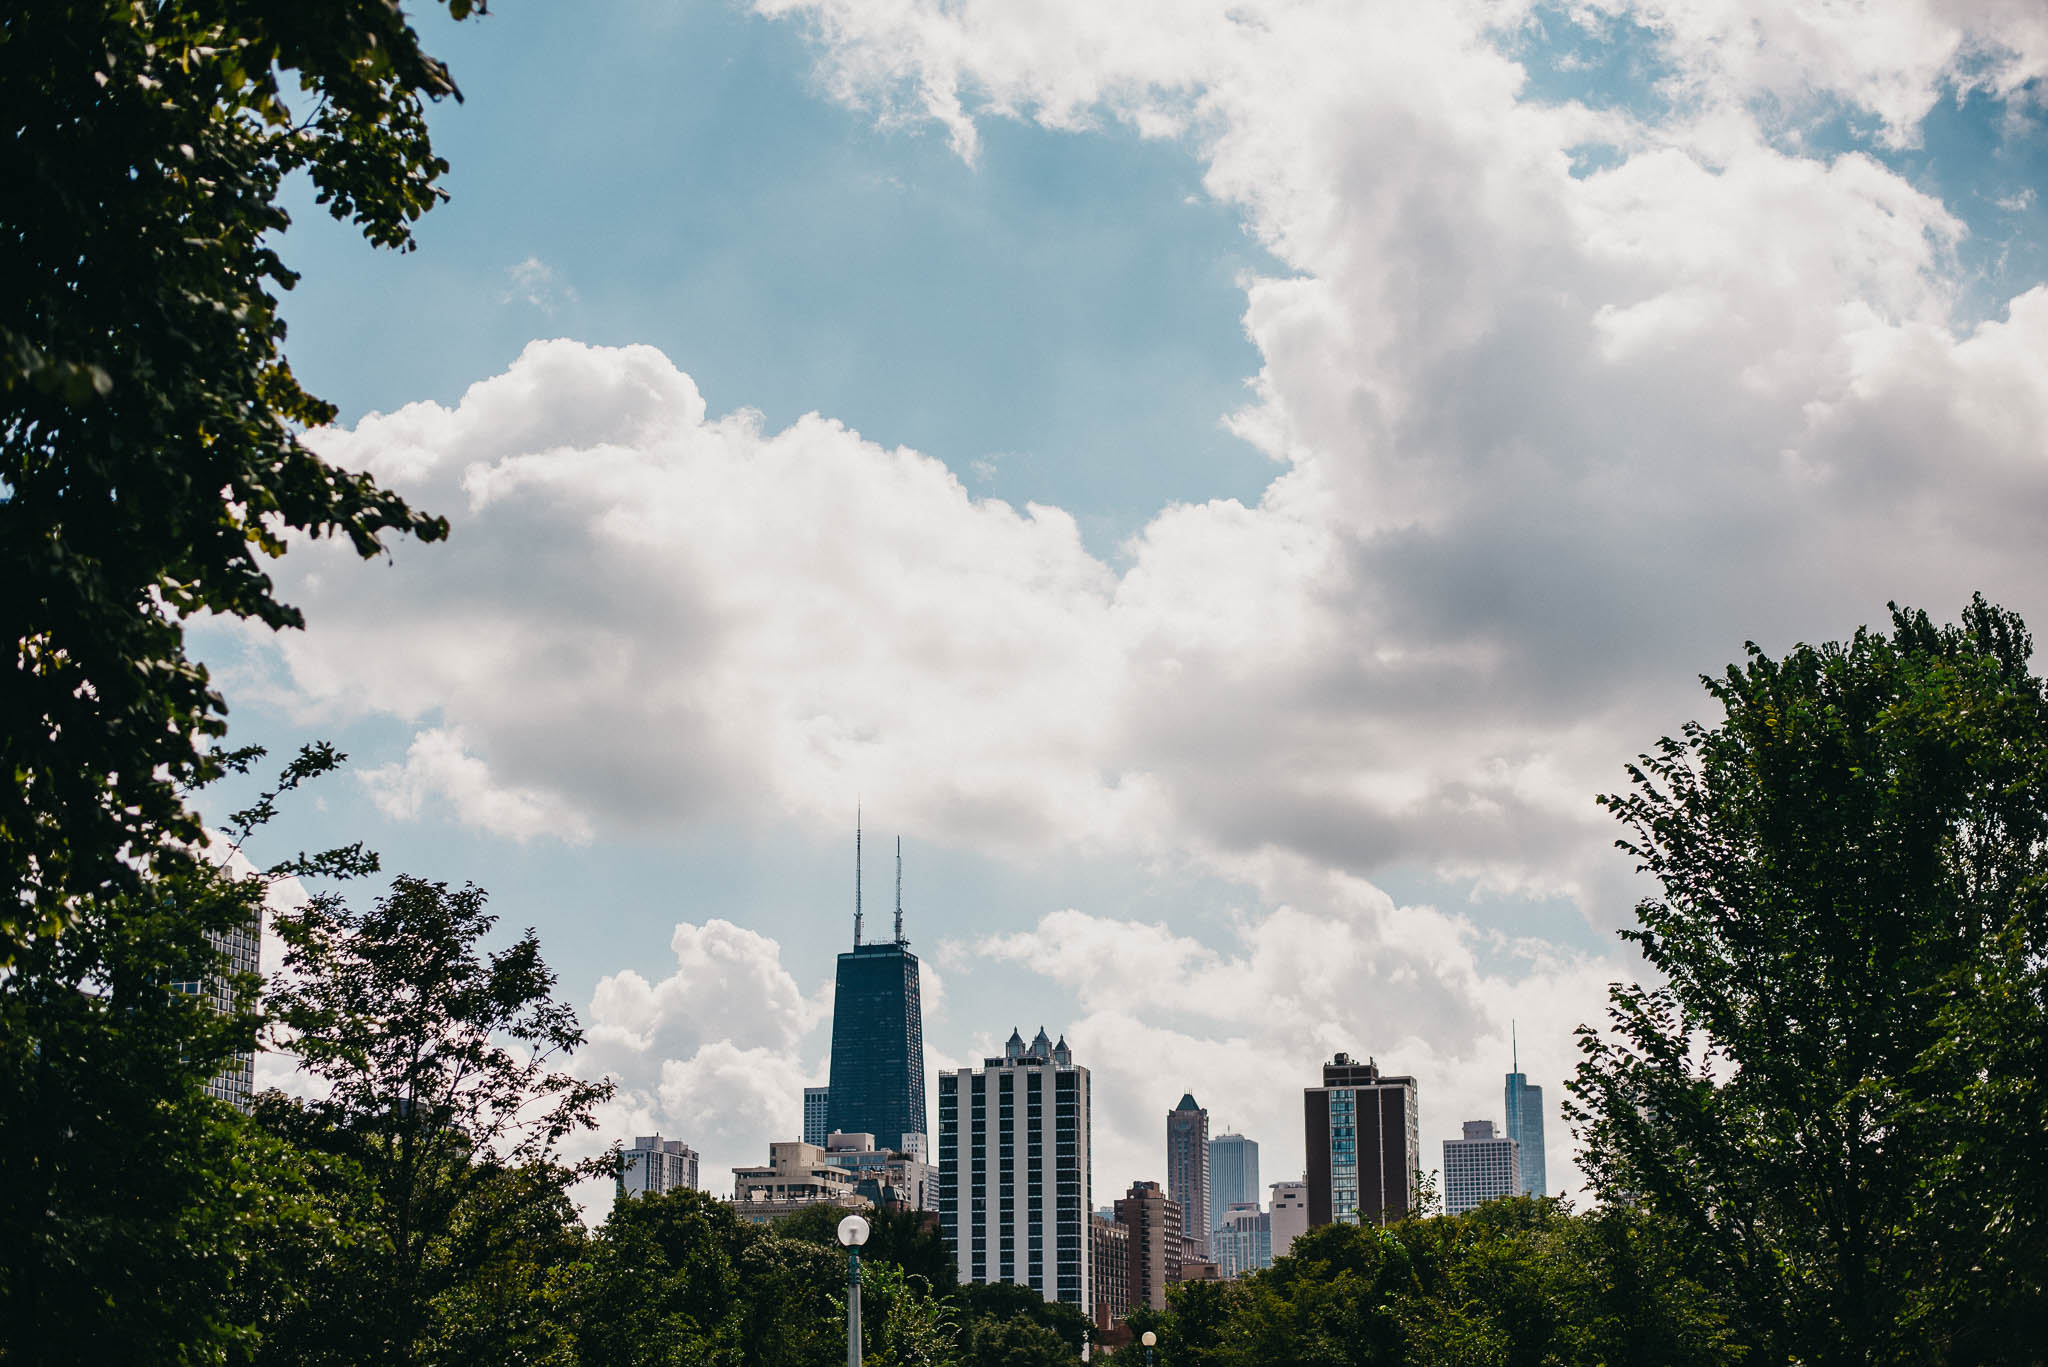 Chicago city skyline from North Chicago